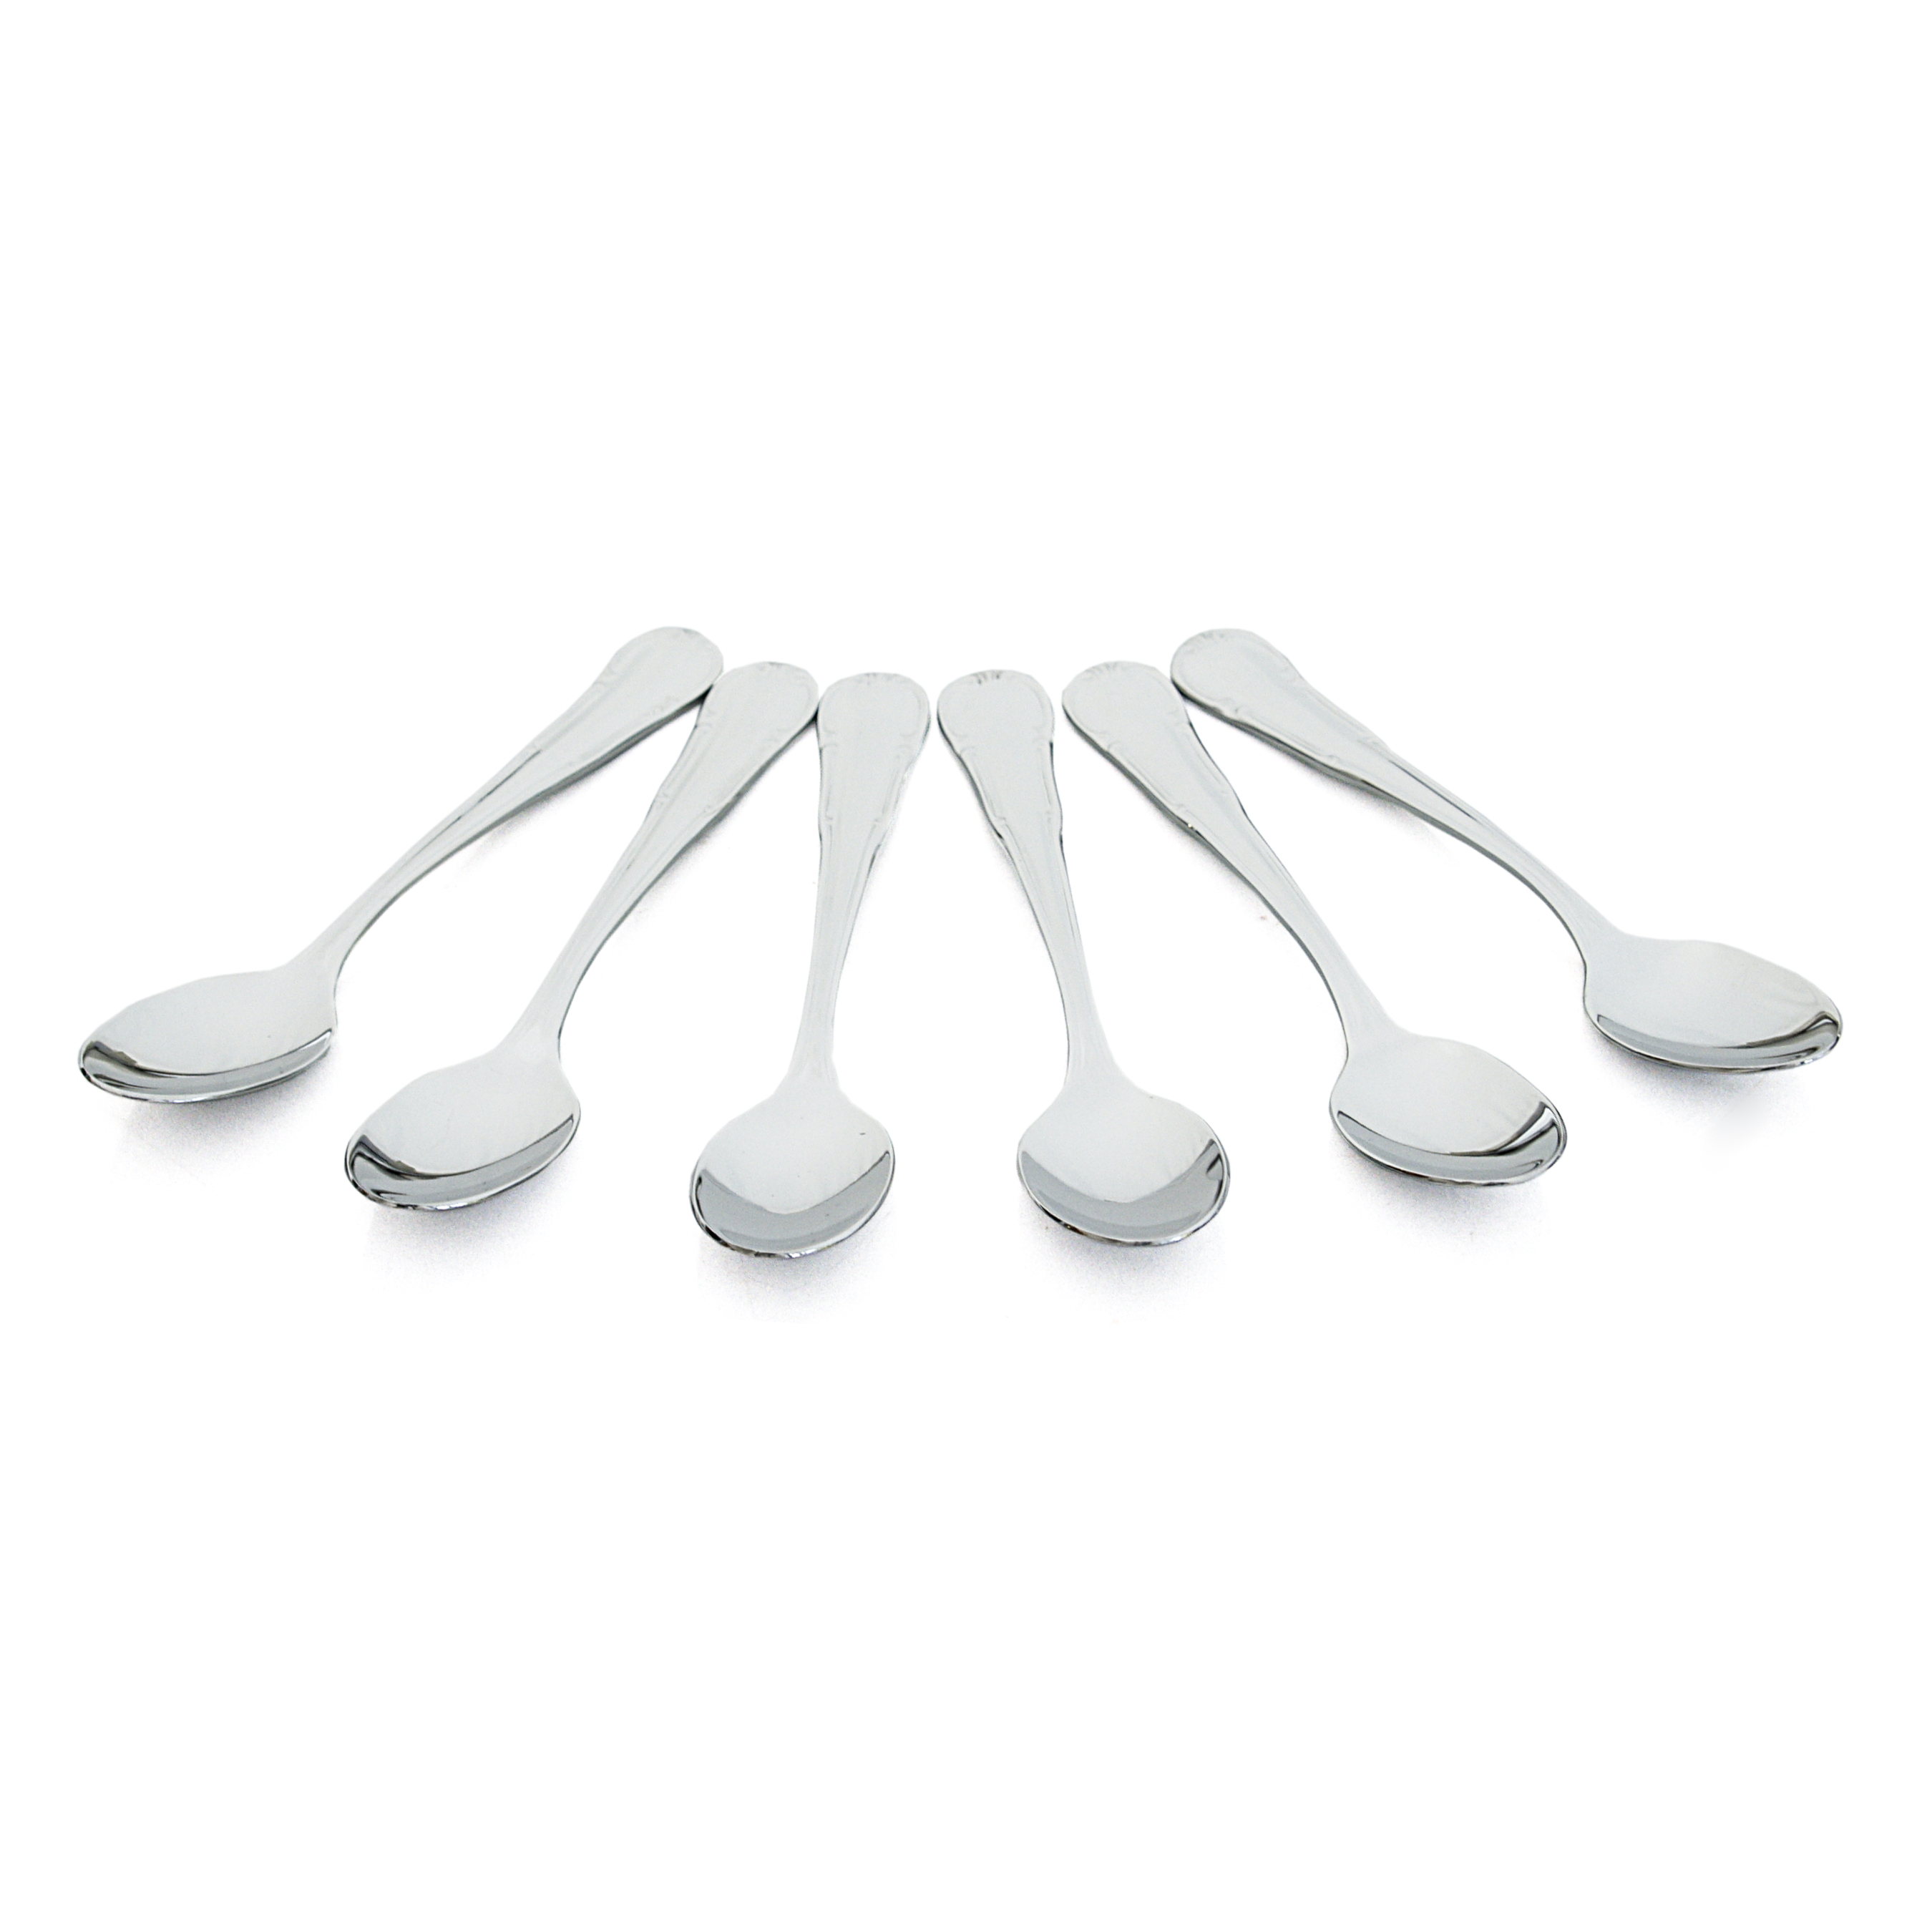 WMF Barock Cromargan 18/10 Stainless Steel Espresso Spoon, Set of 6